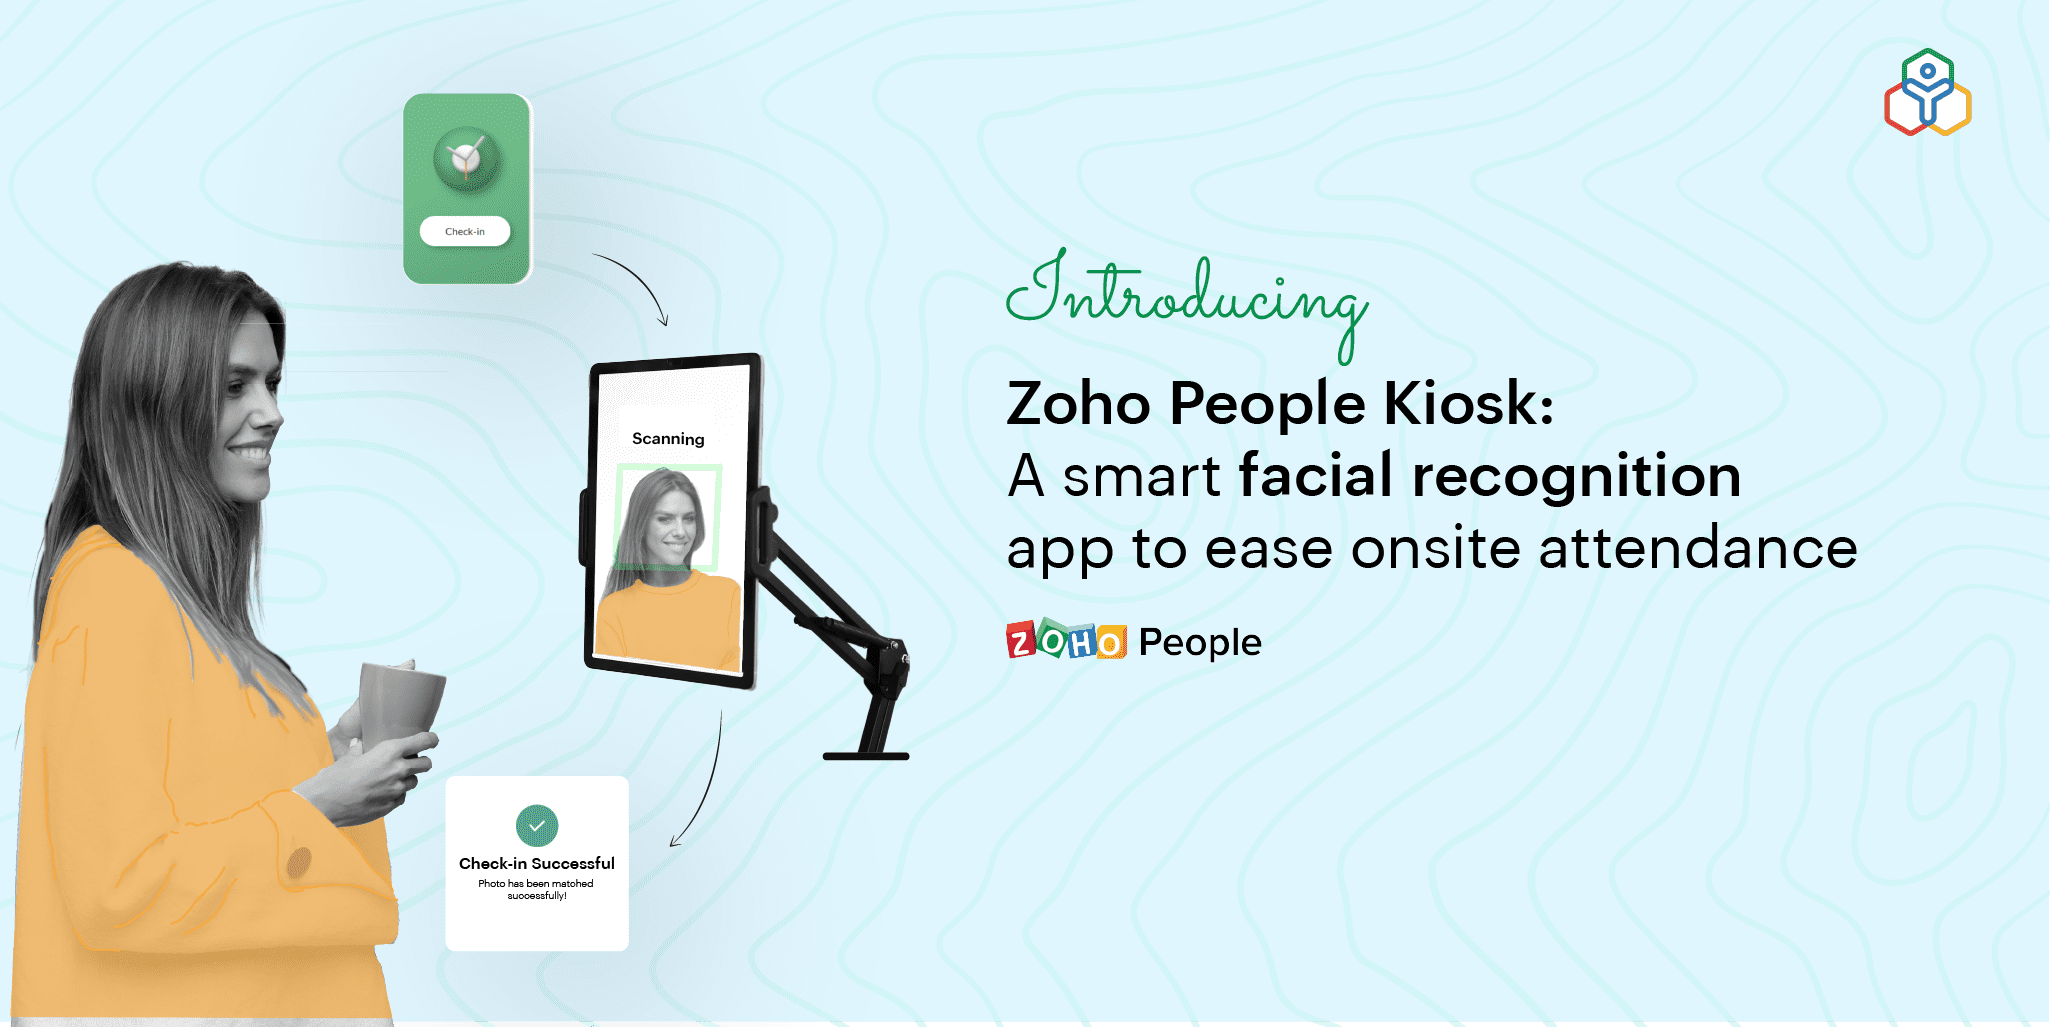 Introducing Zoho People Kiosk: Clock in and out in seconds with facial recognition